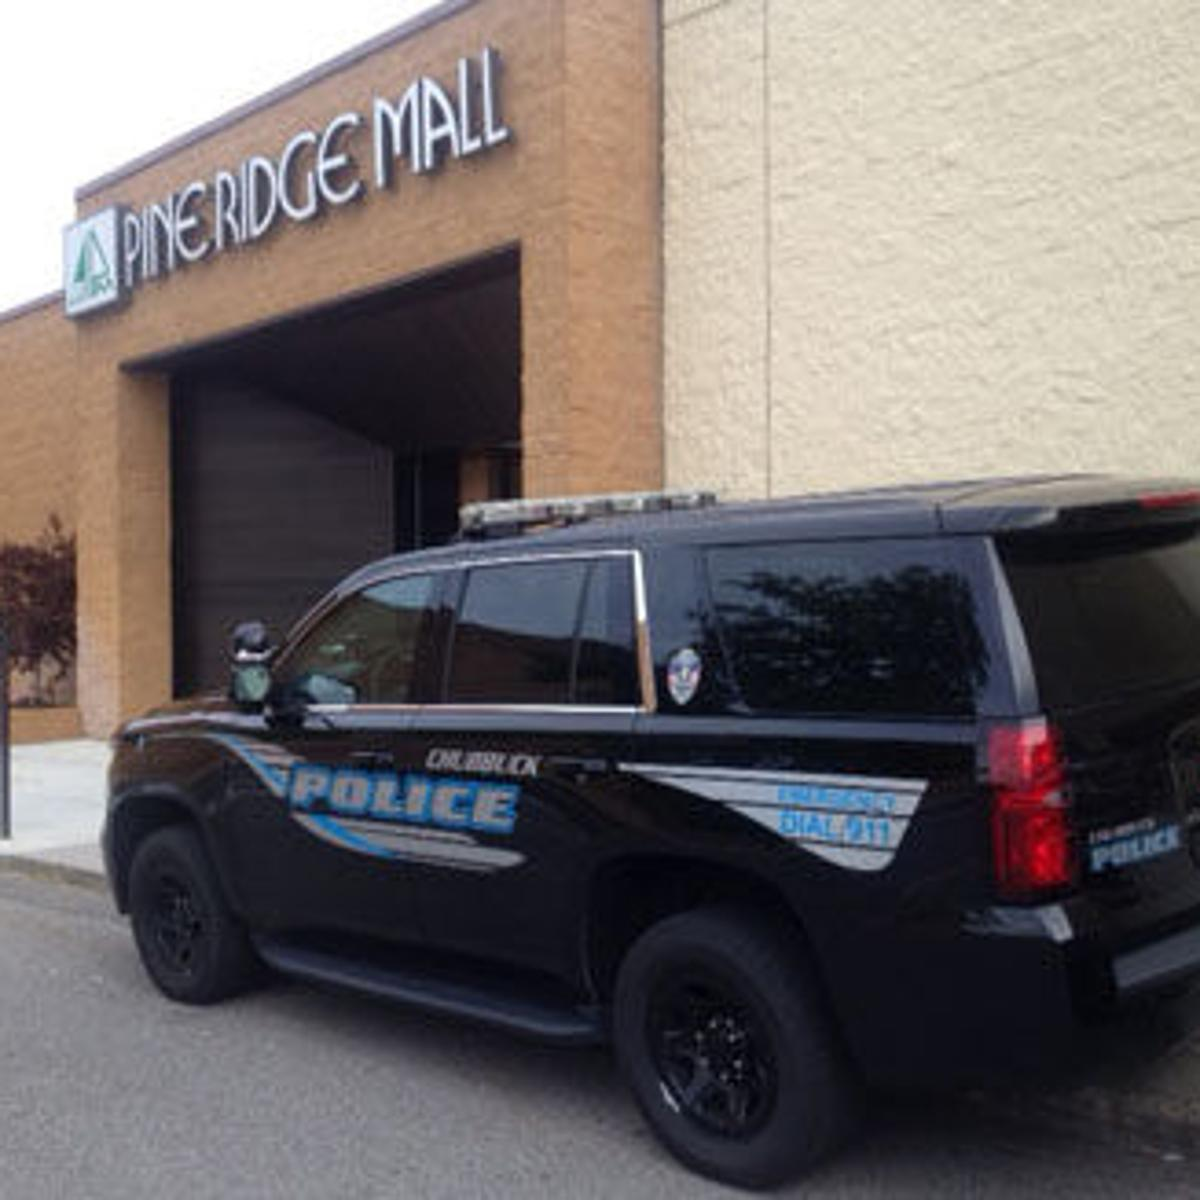 Pine Ridge Mall evacuated because of bomb threat; second such threat to  cause evacuations in Pocatello area this week | Local |  idahostatejournal.com